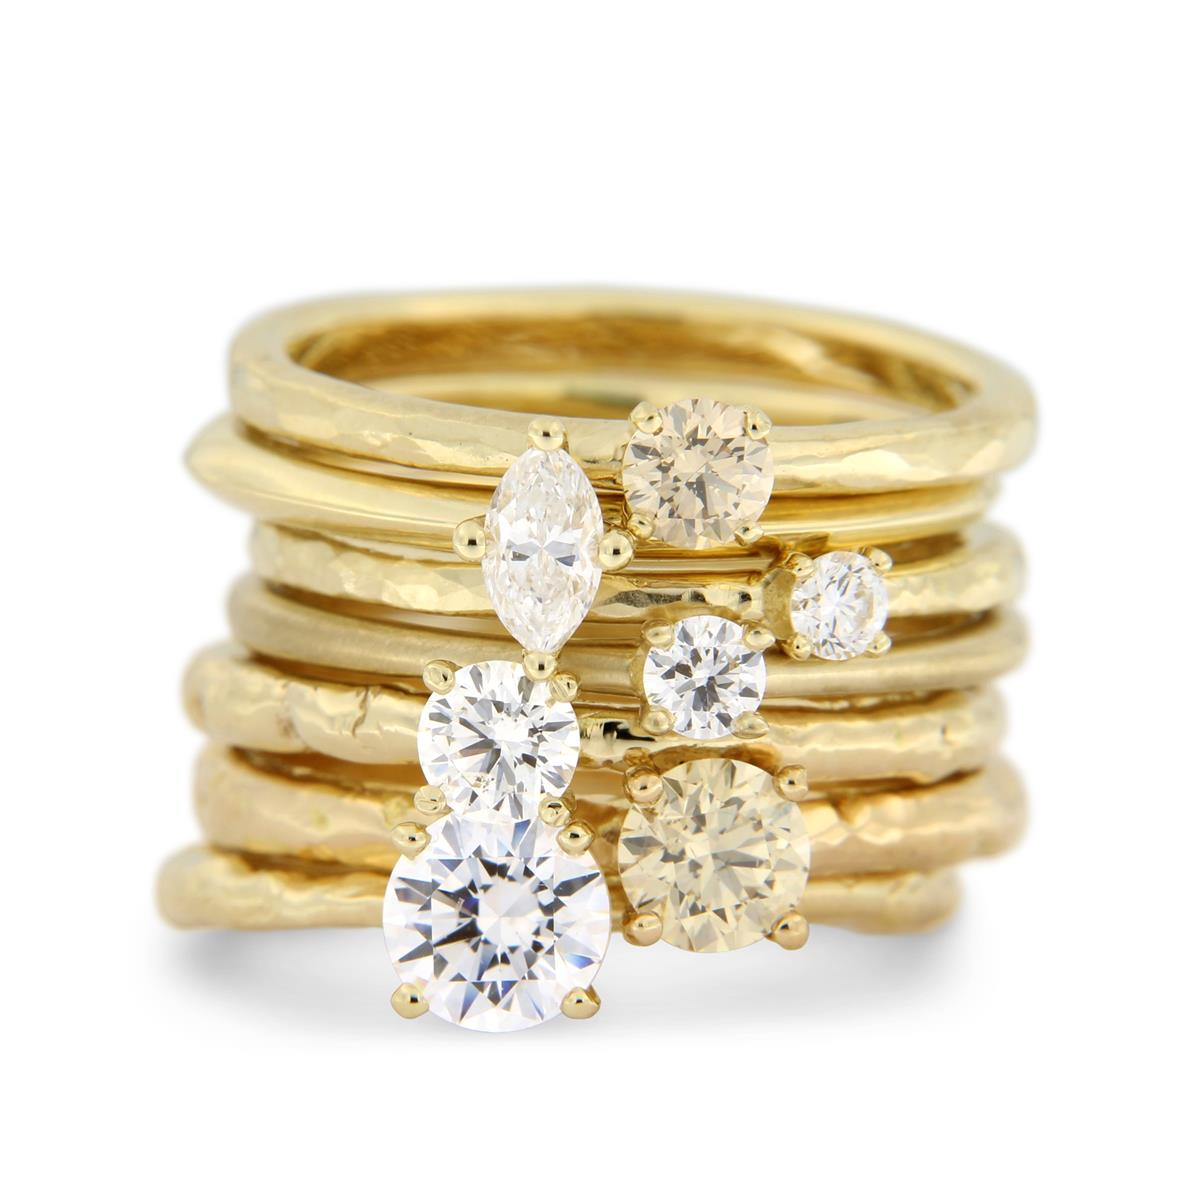 Katie g. Jewellery - Solitaire Ring Stack Gelbgold_ab EUR 1.100